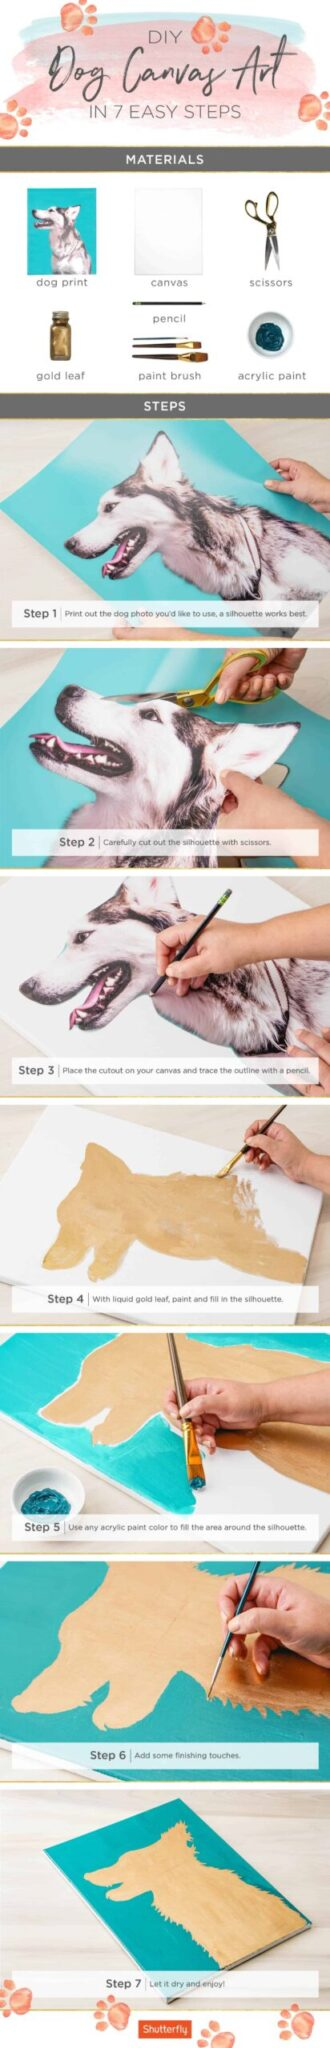 baf09c72bc0b For more fun DIY ideas and inspiration, head over to Shutterfly right here:  https://www.shutterfly.com/ideas/dog-canvas-art/